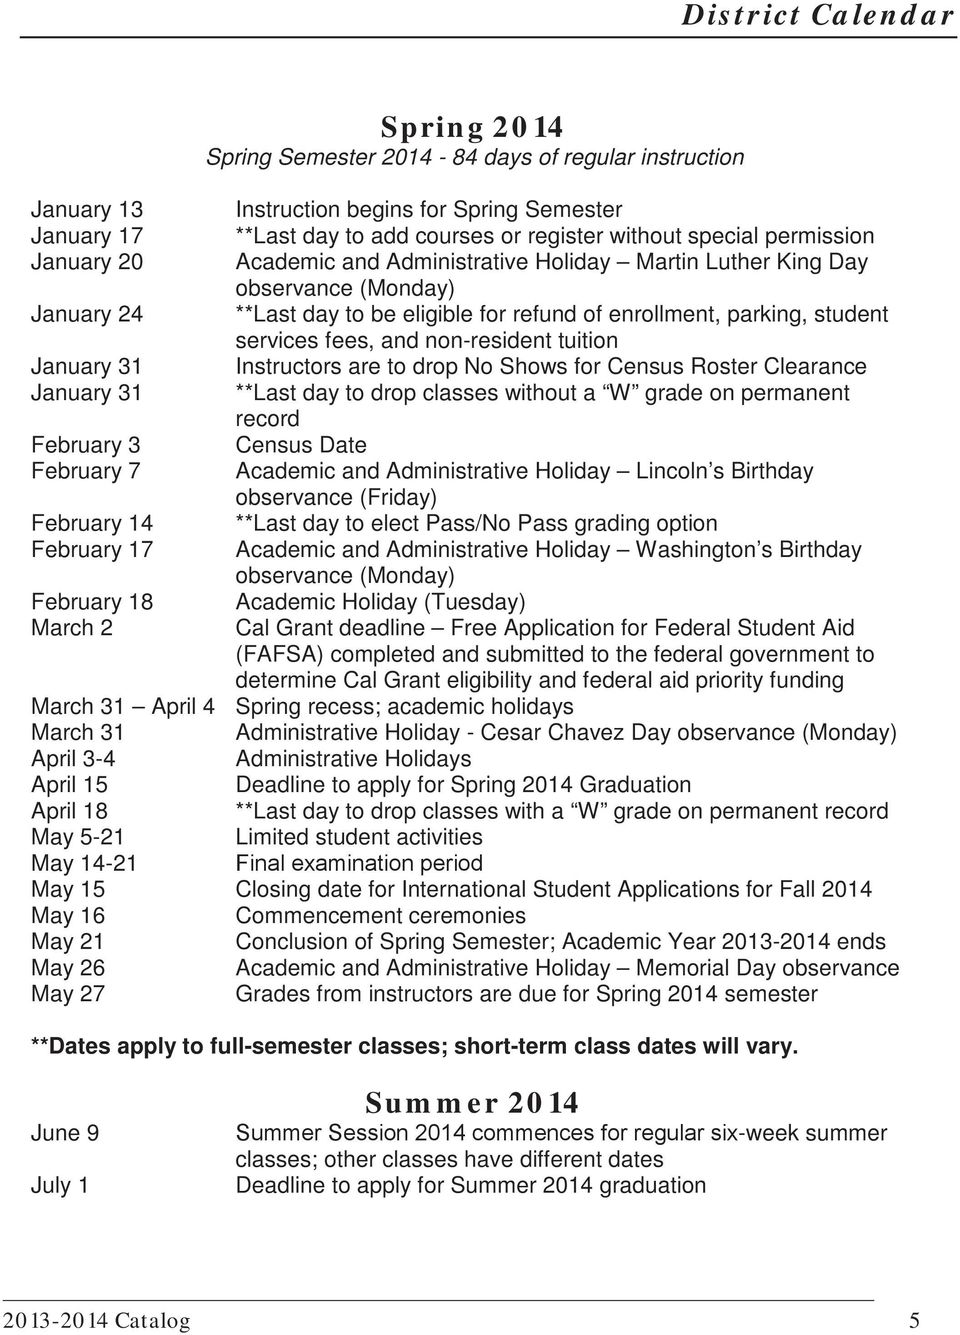 non-resident tuition January 31 Instructors are to drop No Shows for Census Roster Clearance January 31 **Last day to drop classes without a W grade on permanent record February 3 Census Date